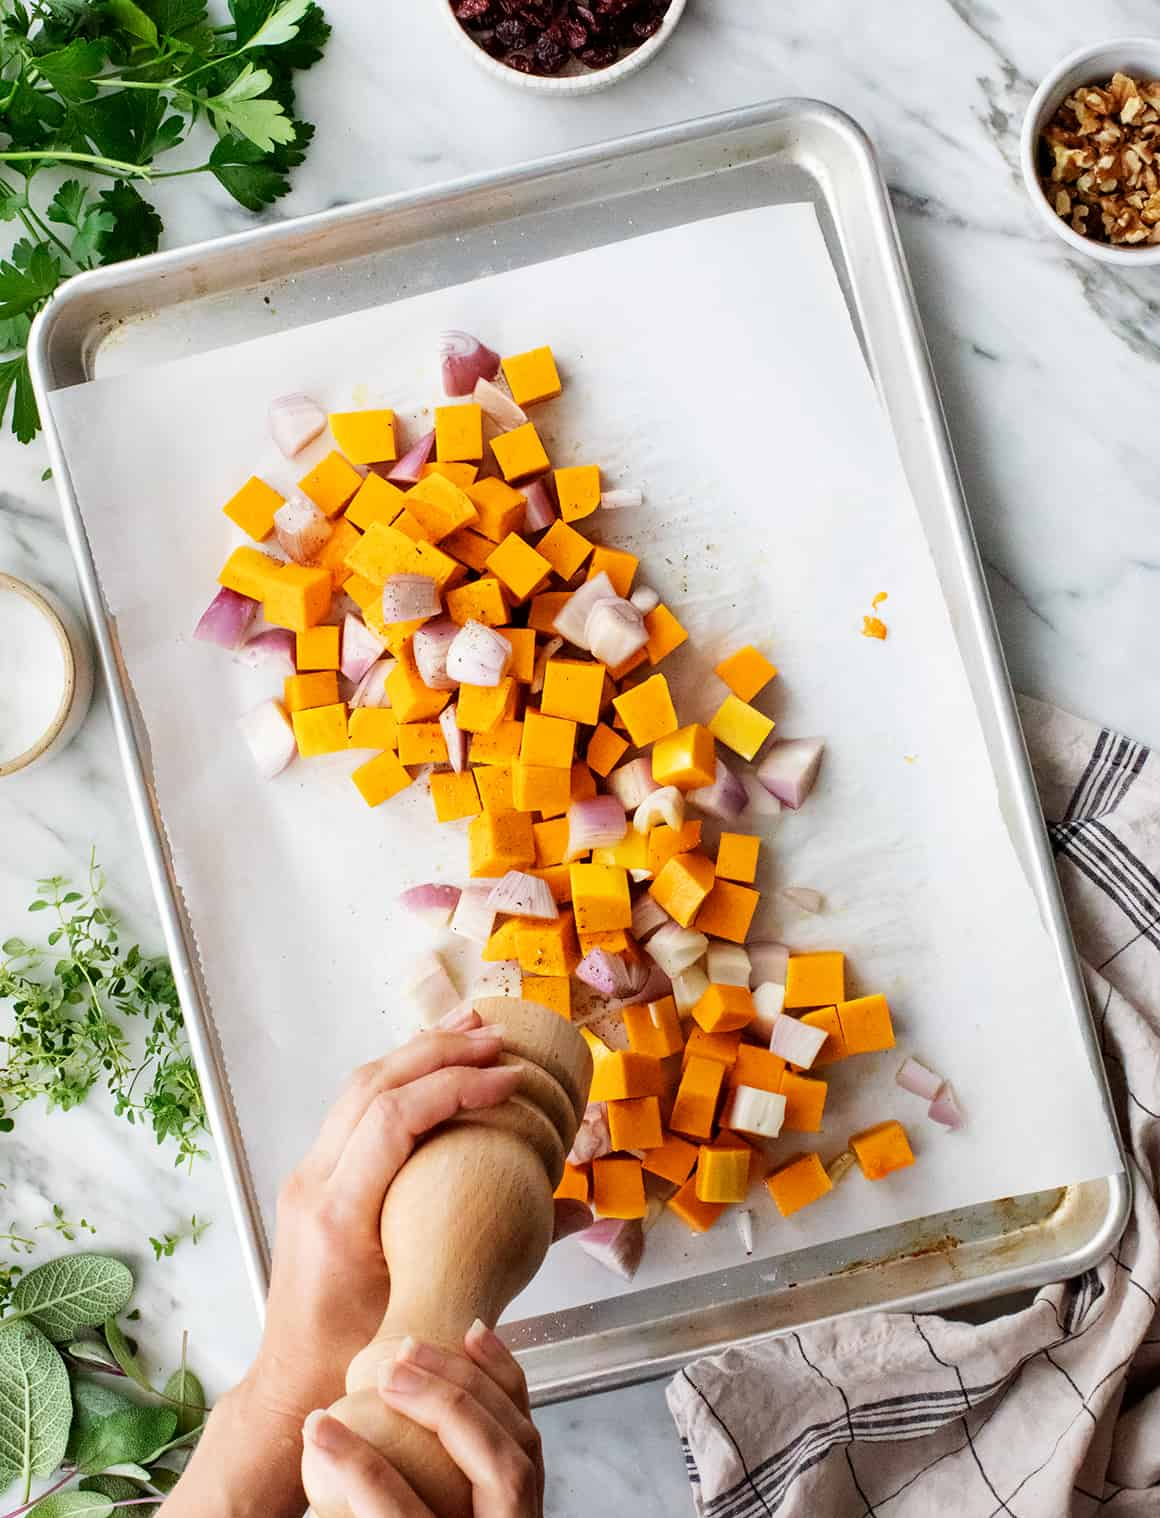 Diced butternut squash and shallots on a baking sheet